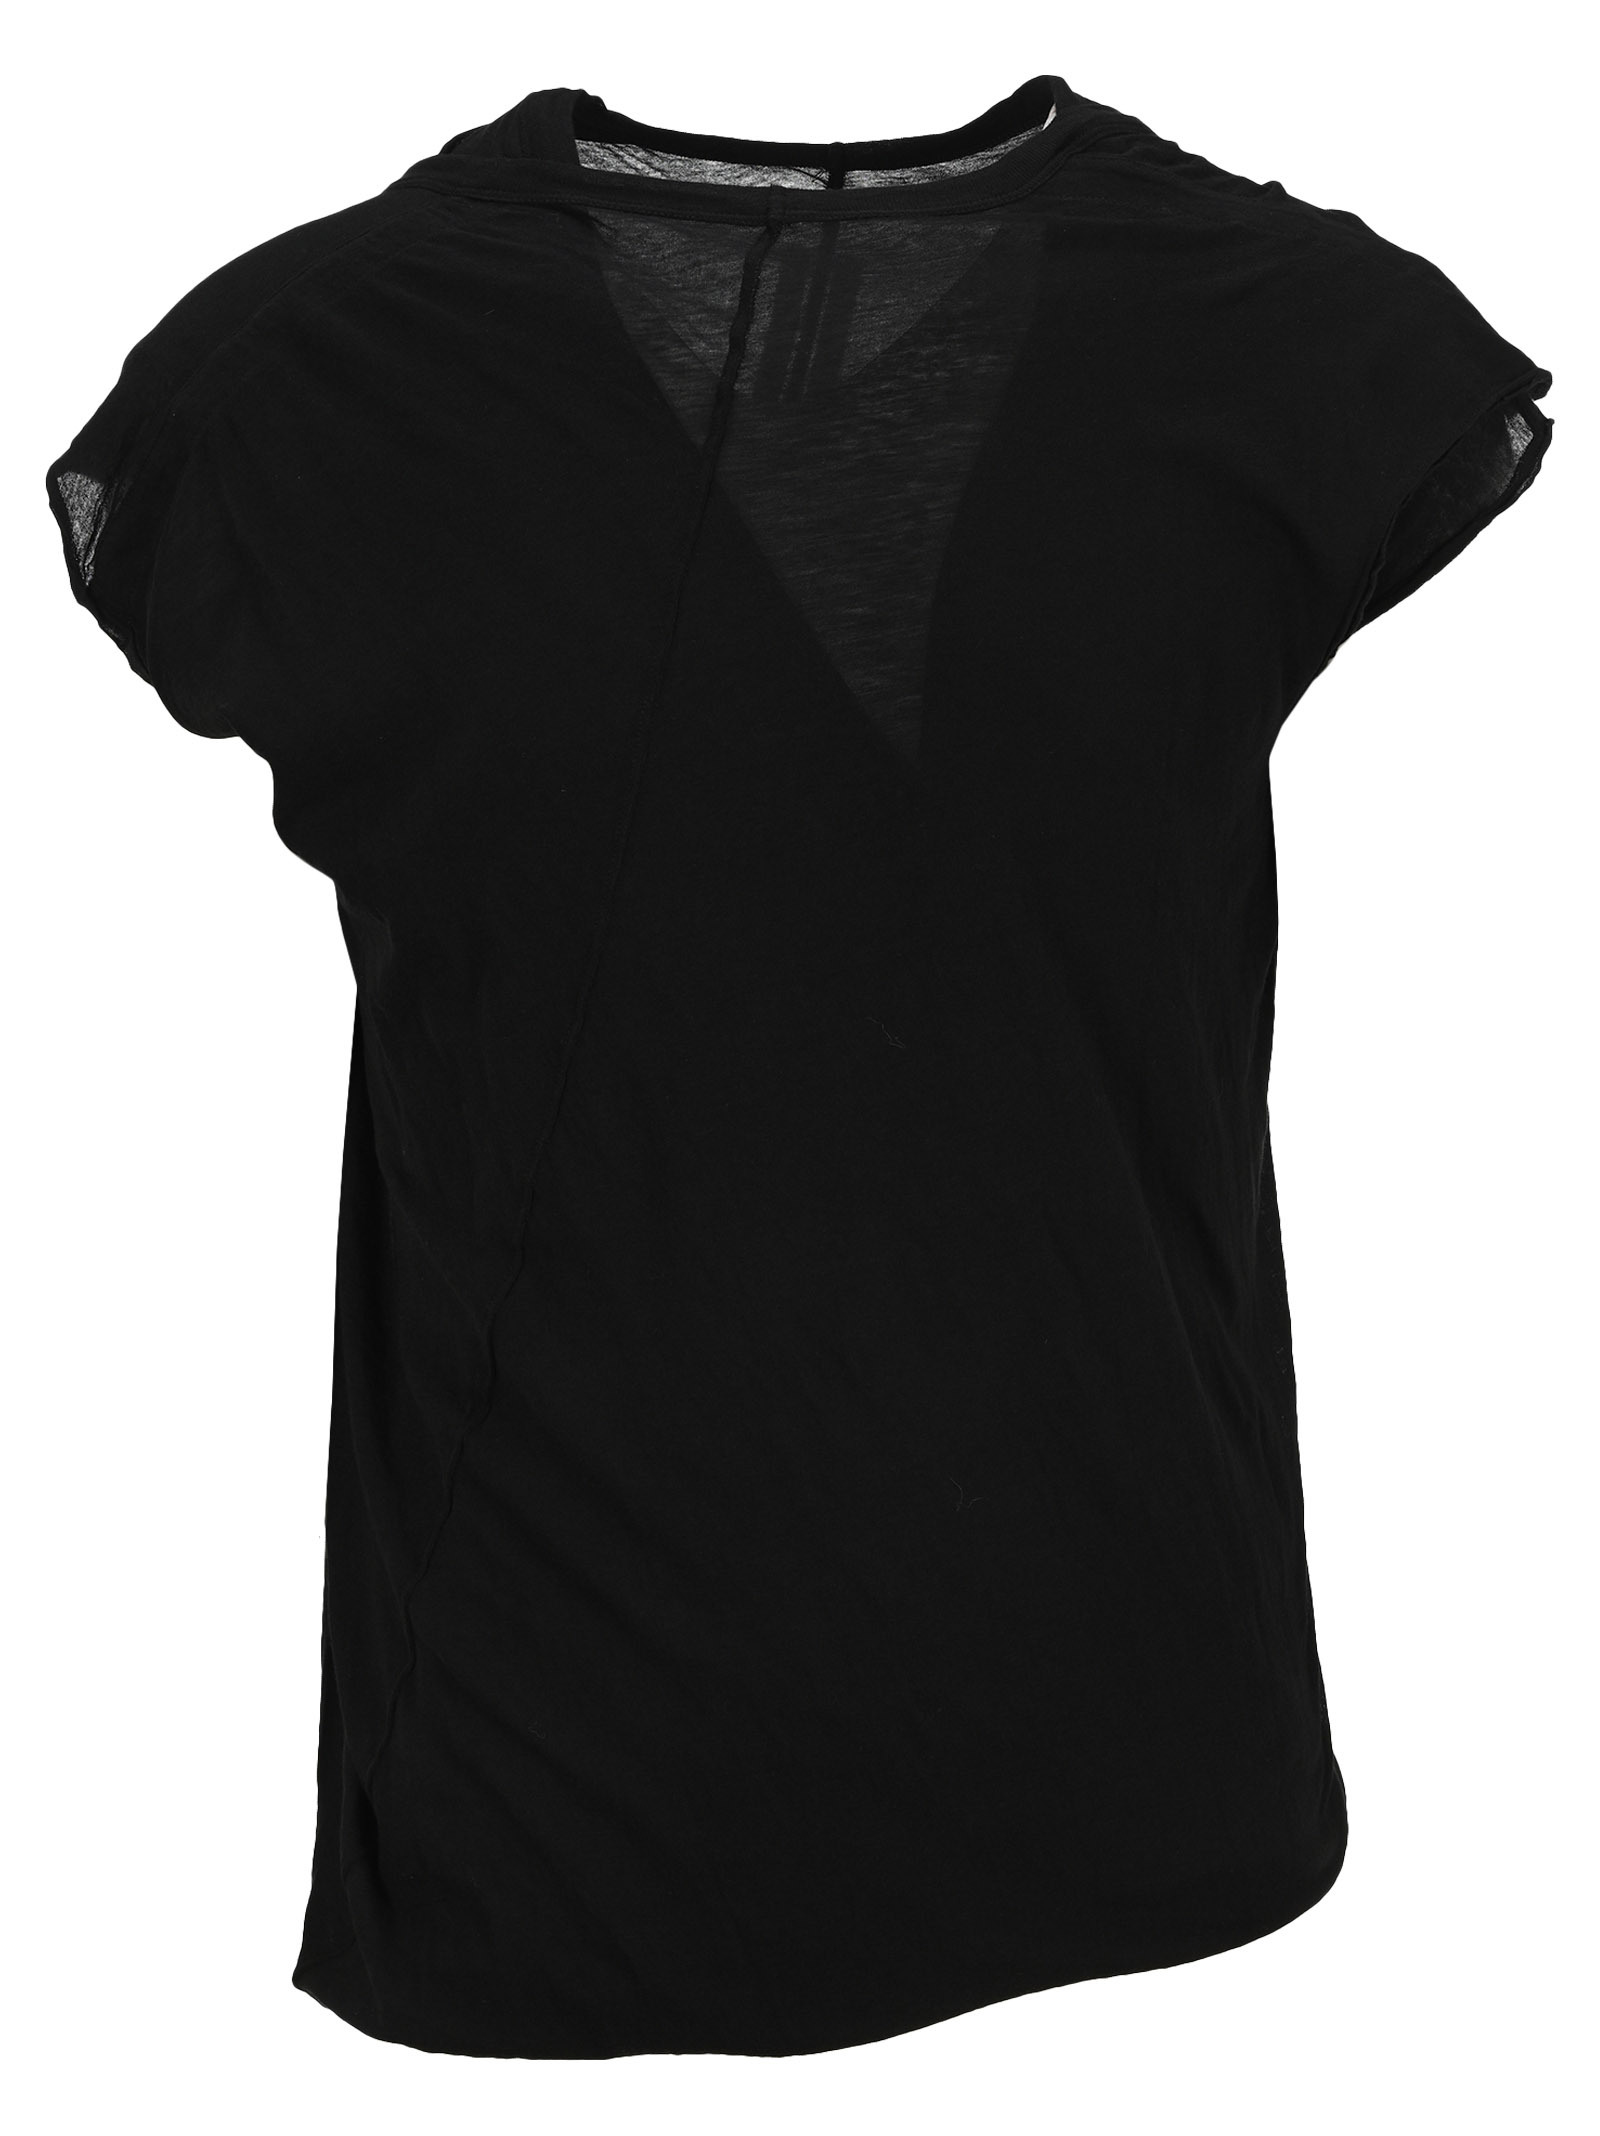 Rick Owens DOUBLE DYLAND T-SHIRT